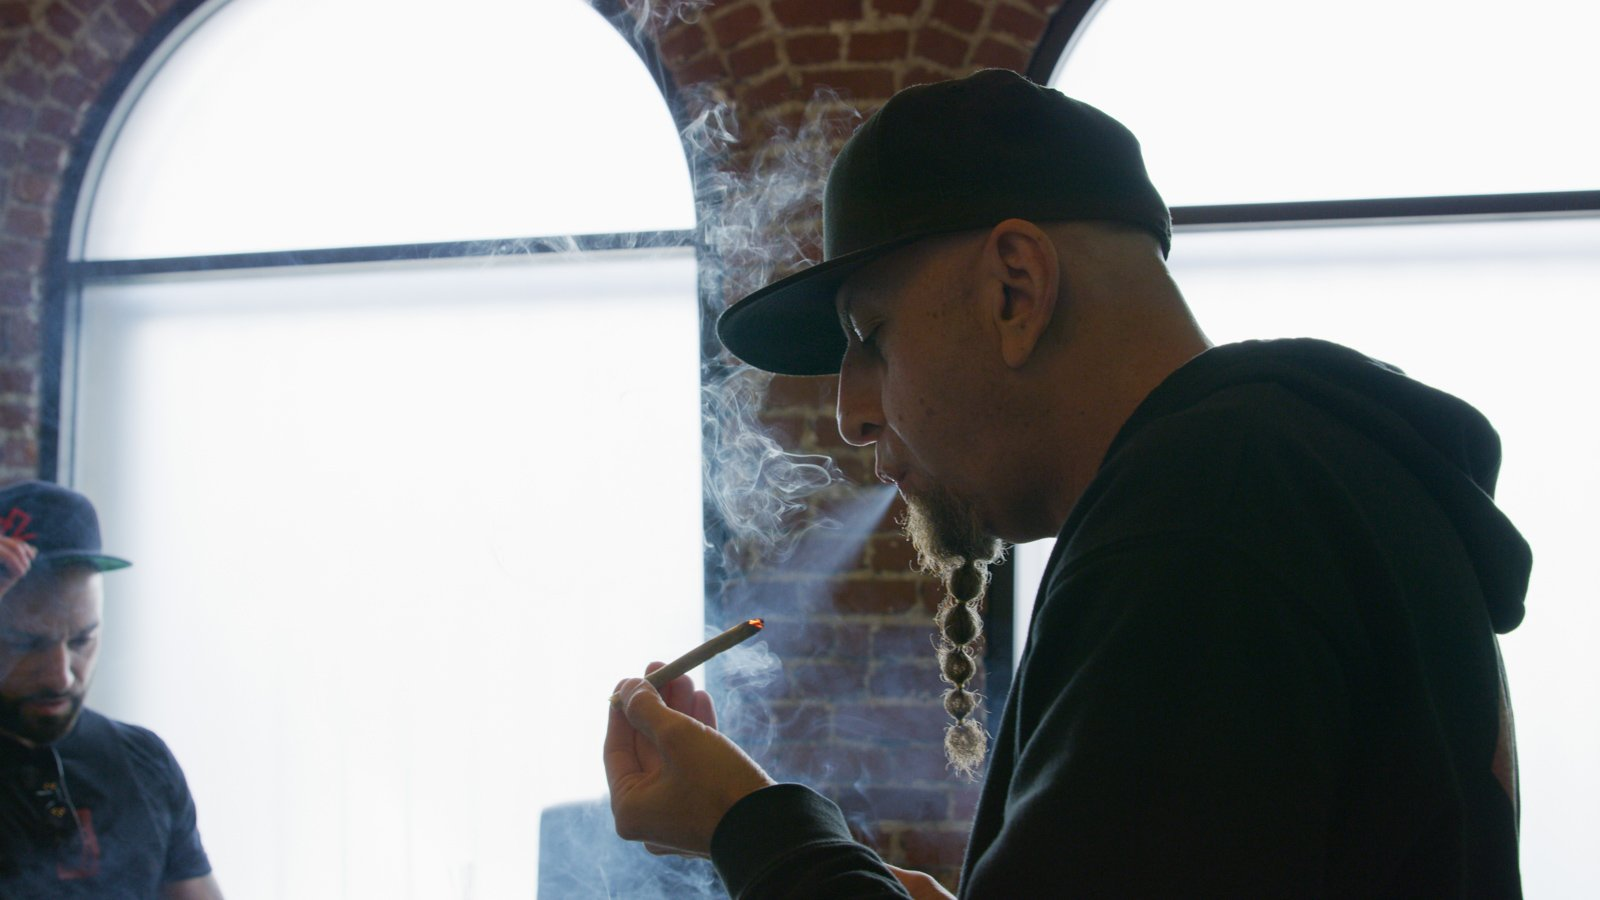 System of a Down's Shavo Odadjian Has a New Hit: A Weed Business